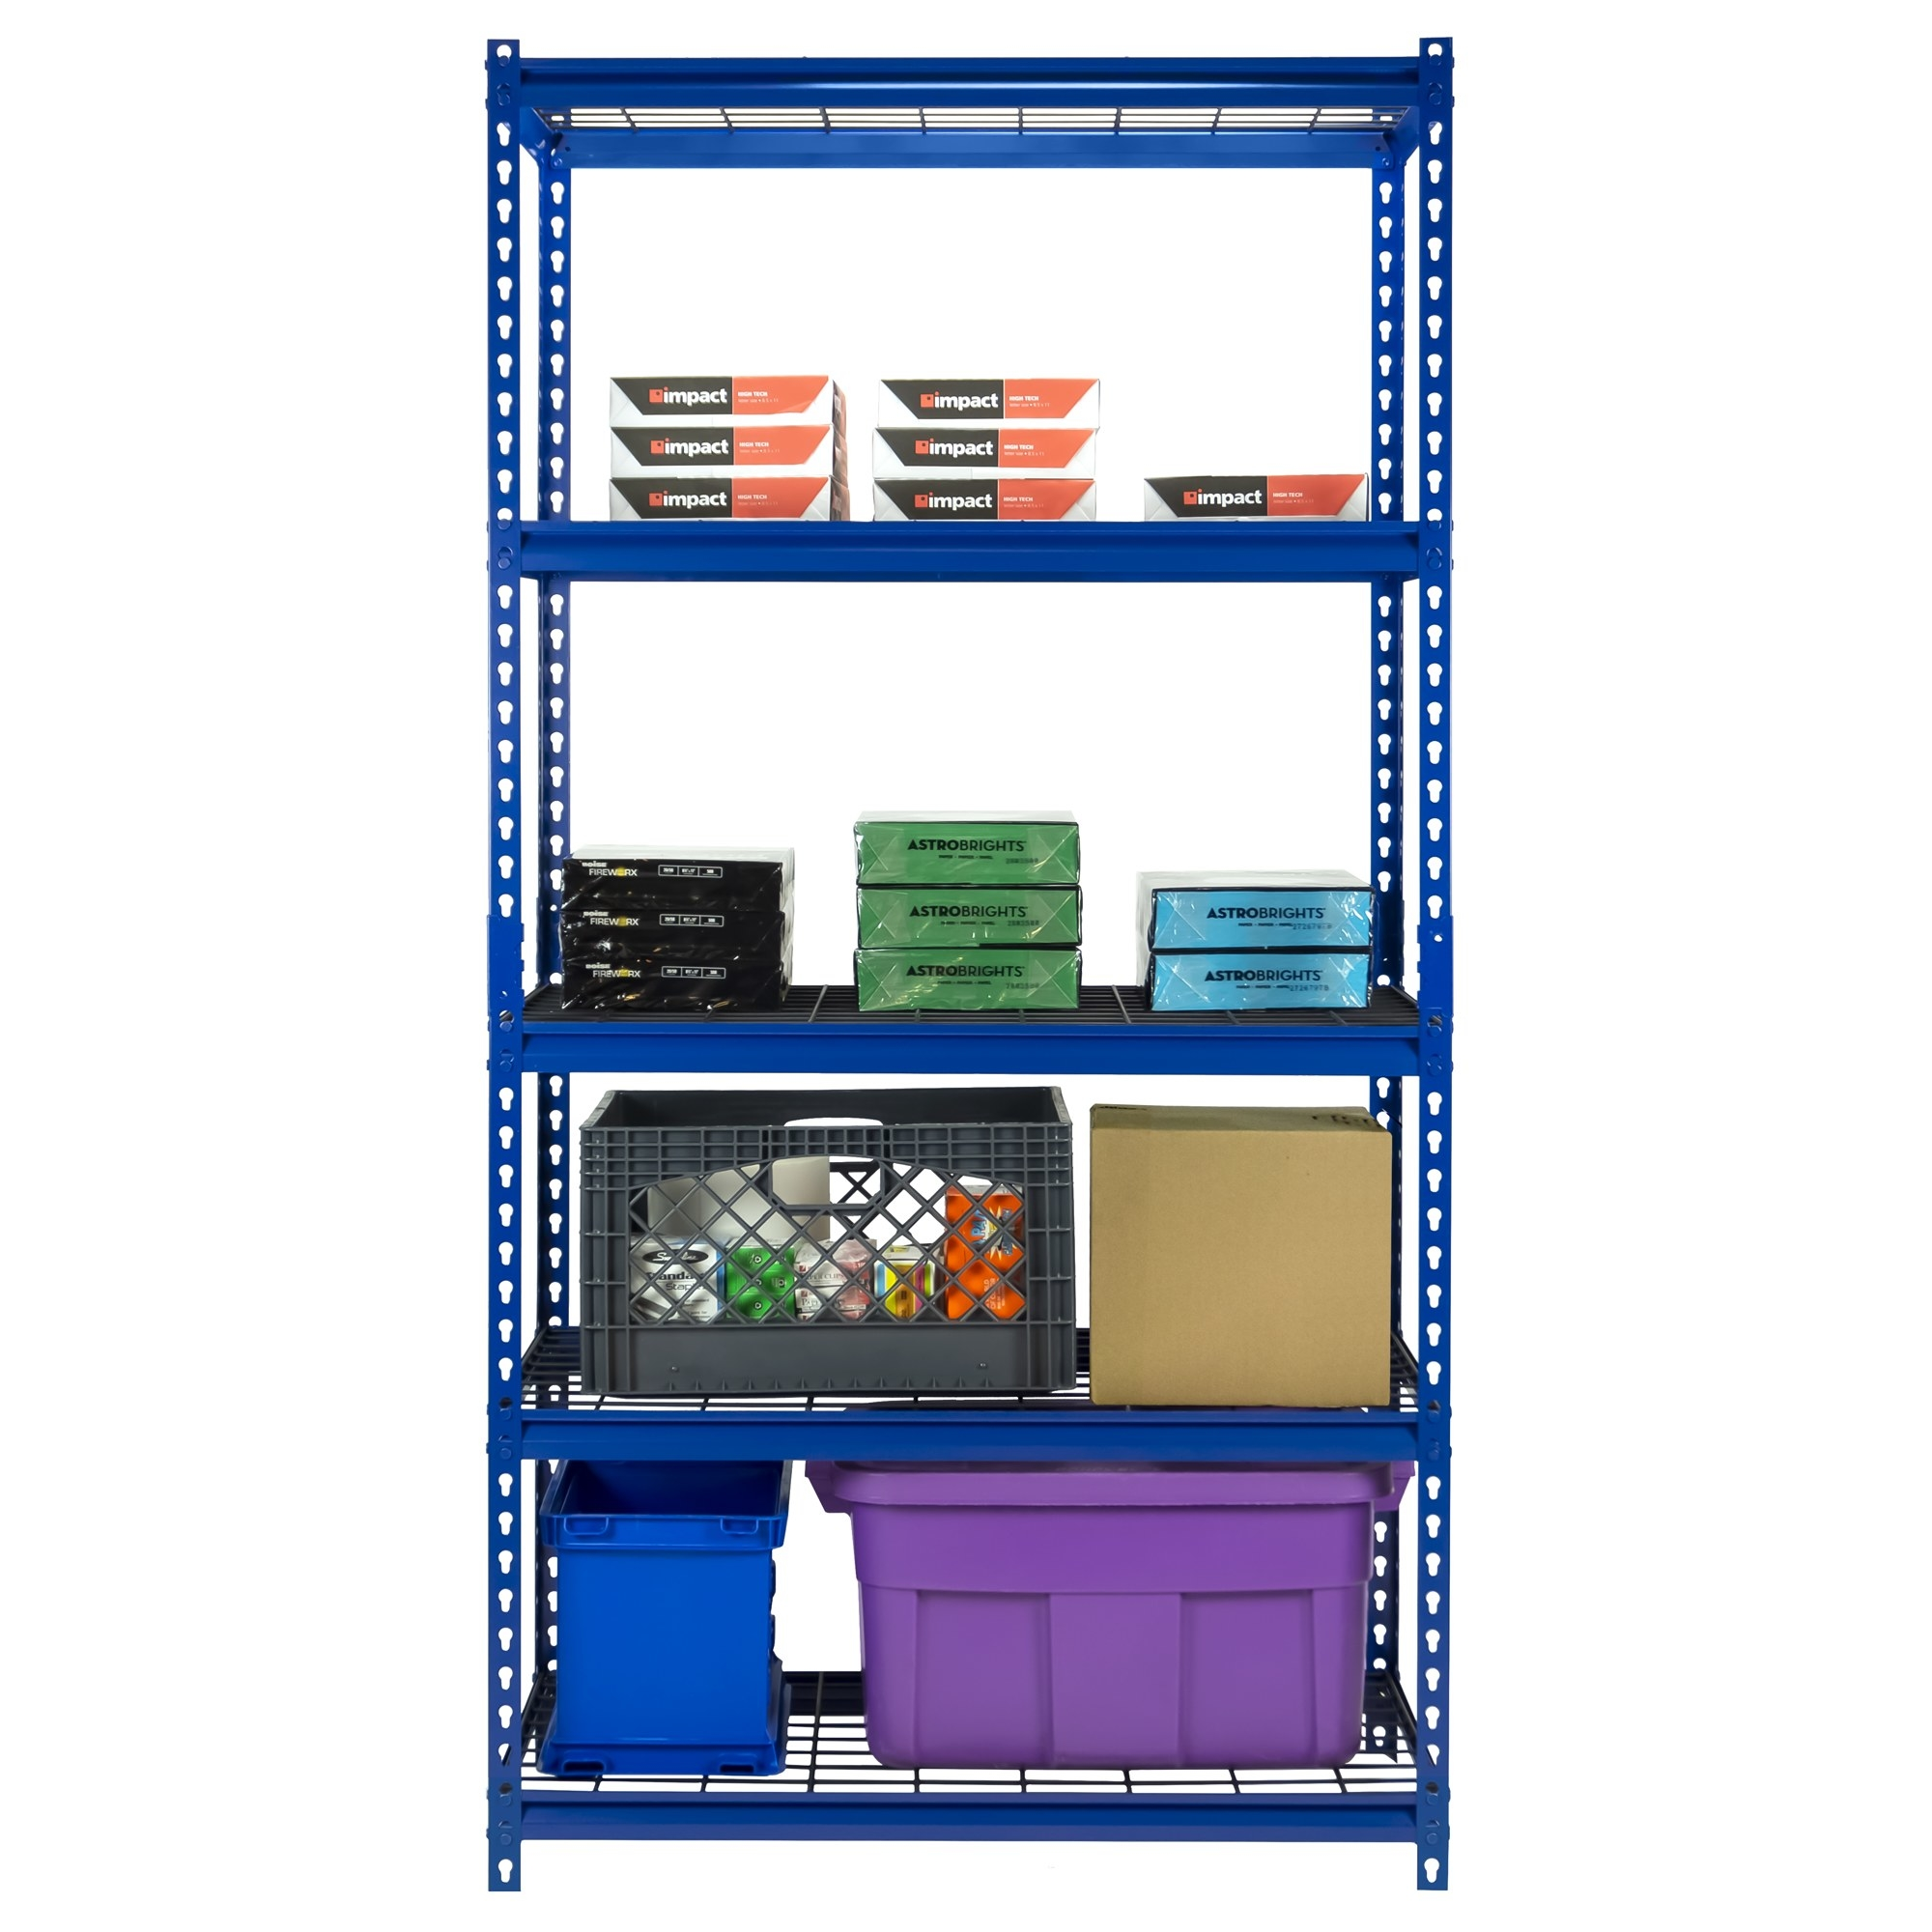 Blue garage shelving holding bins, boxes and paper